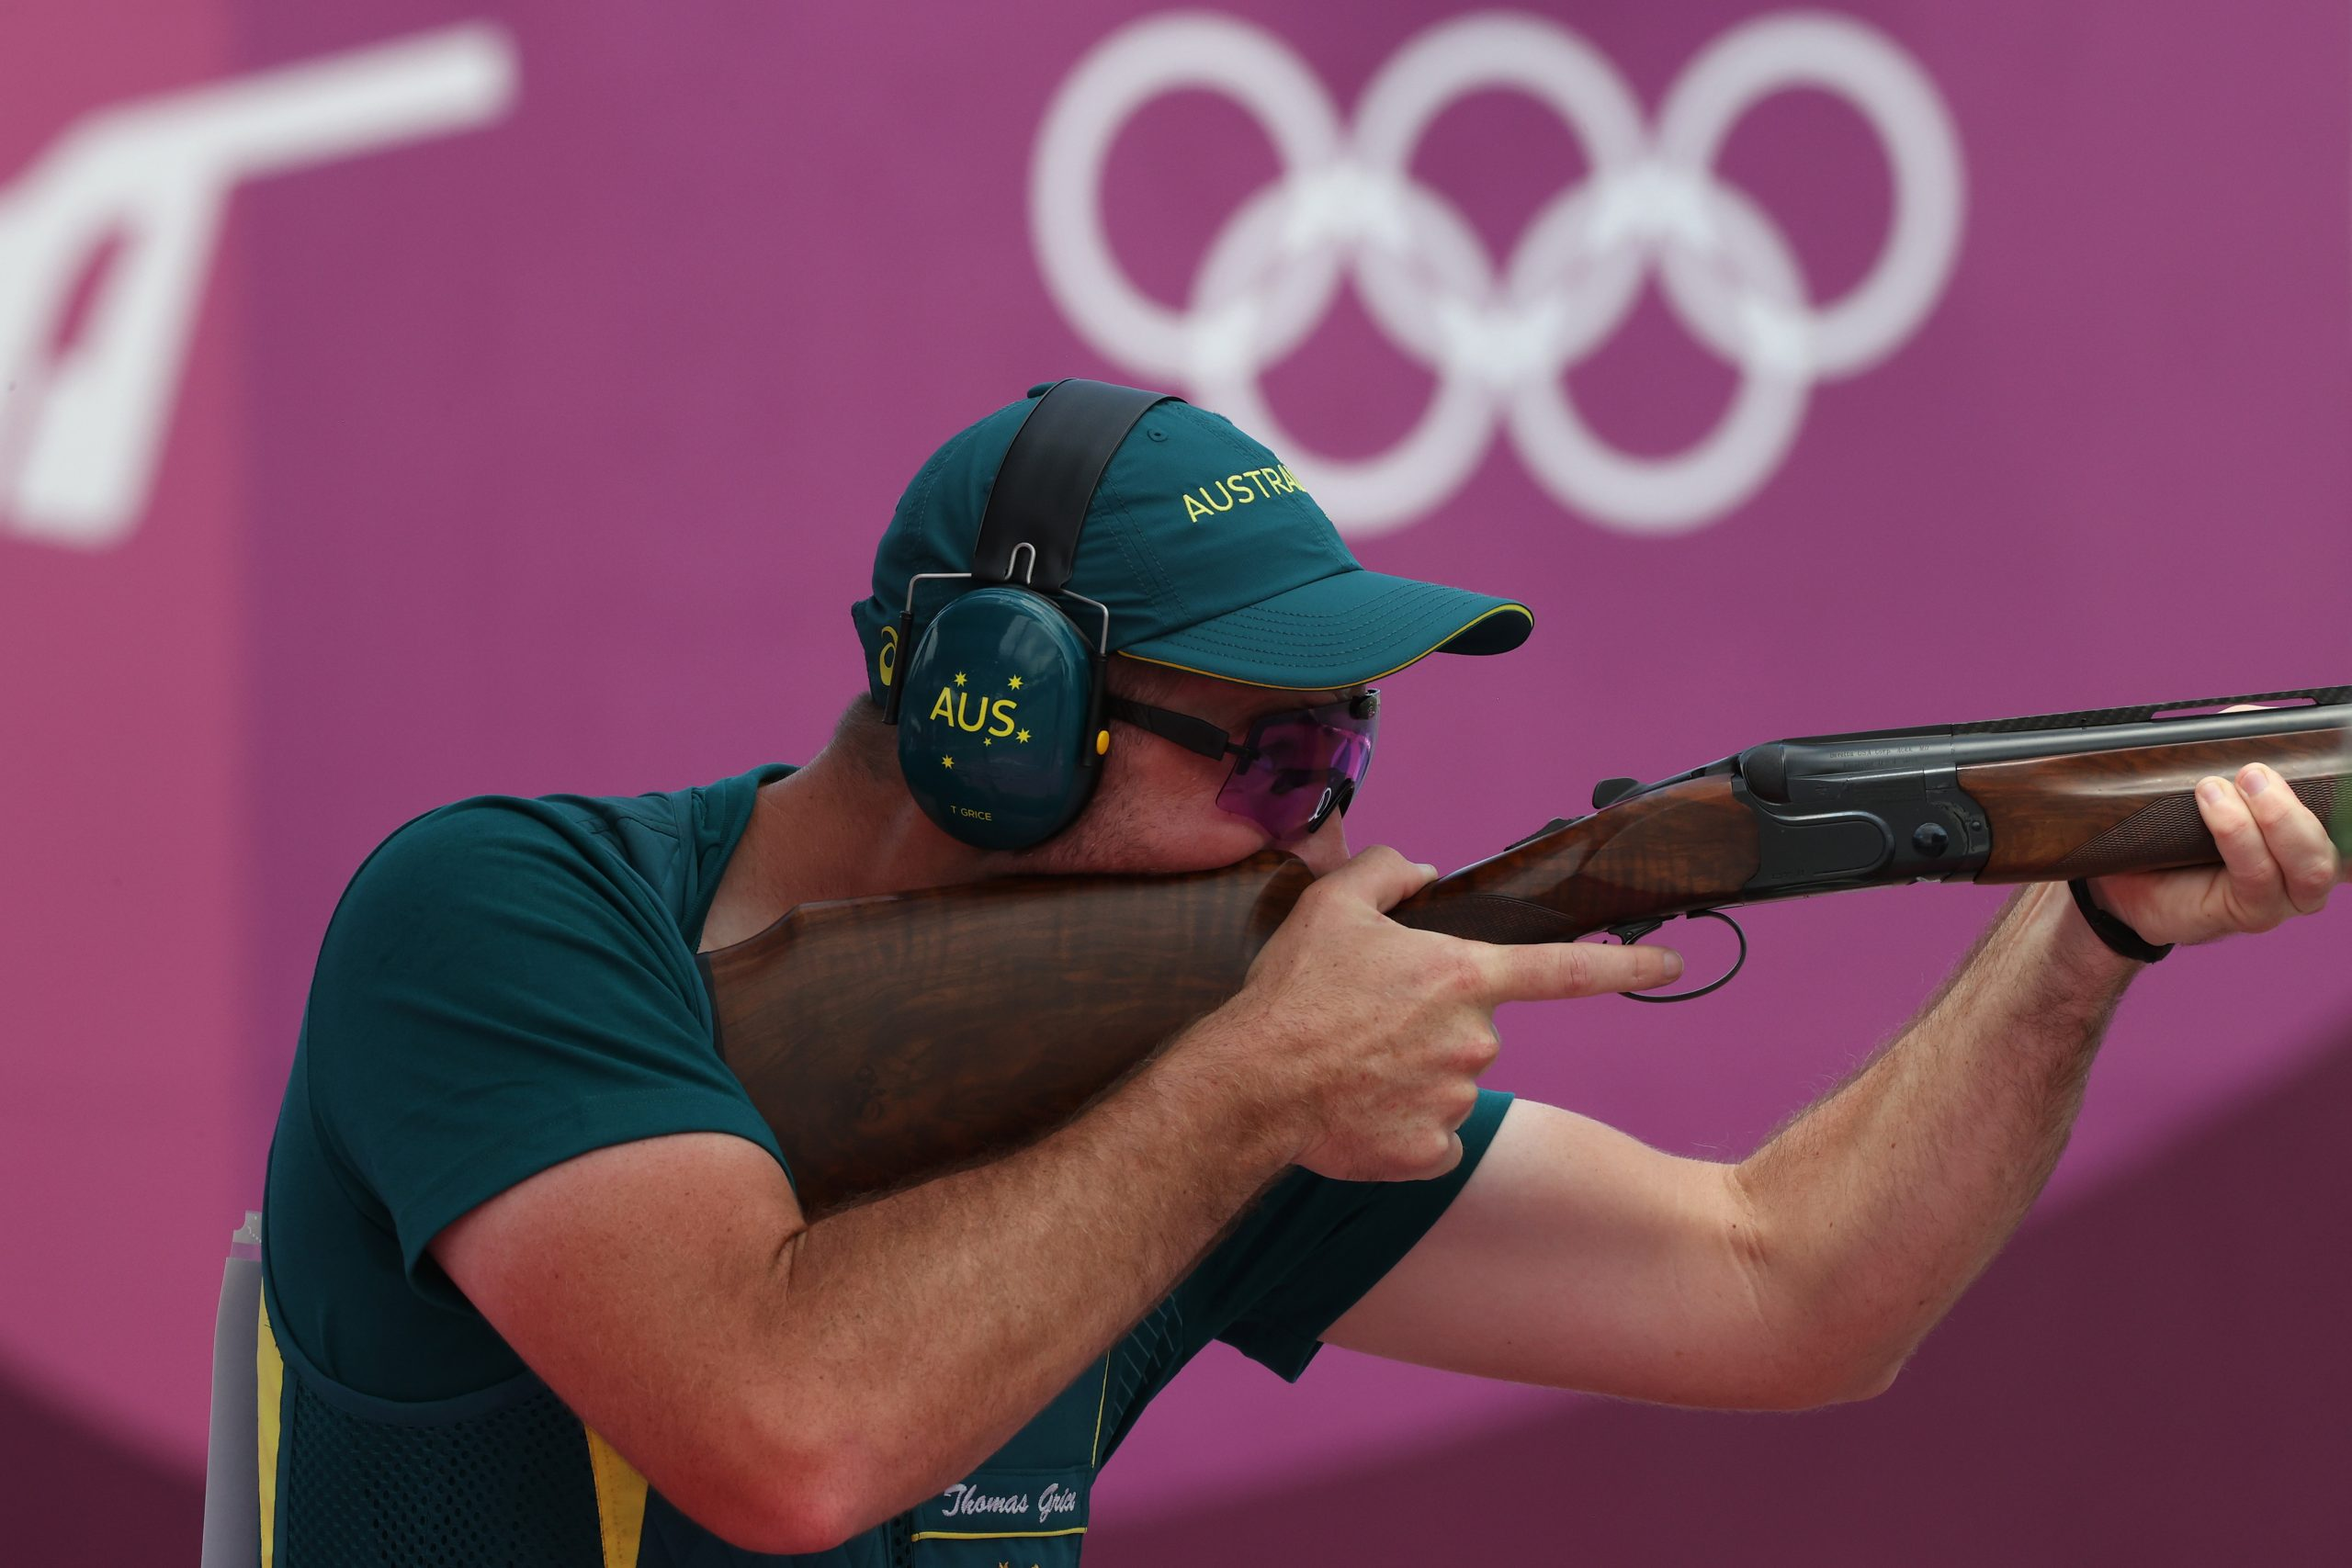 Trap shooters fall short of finals target Image